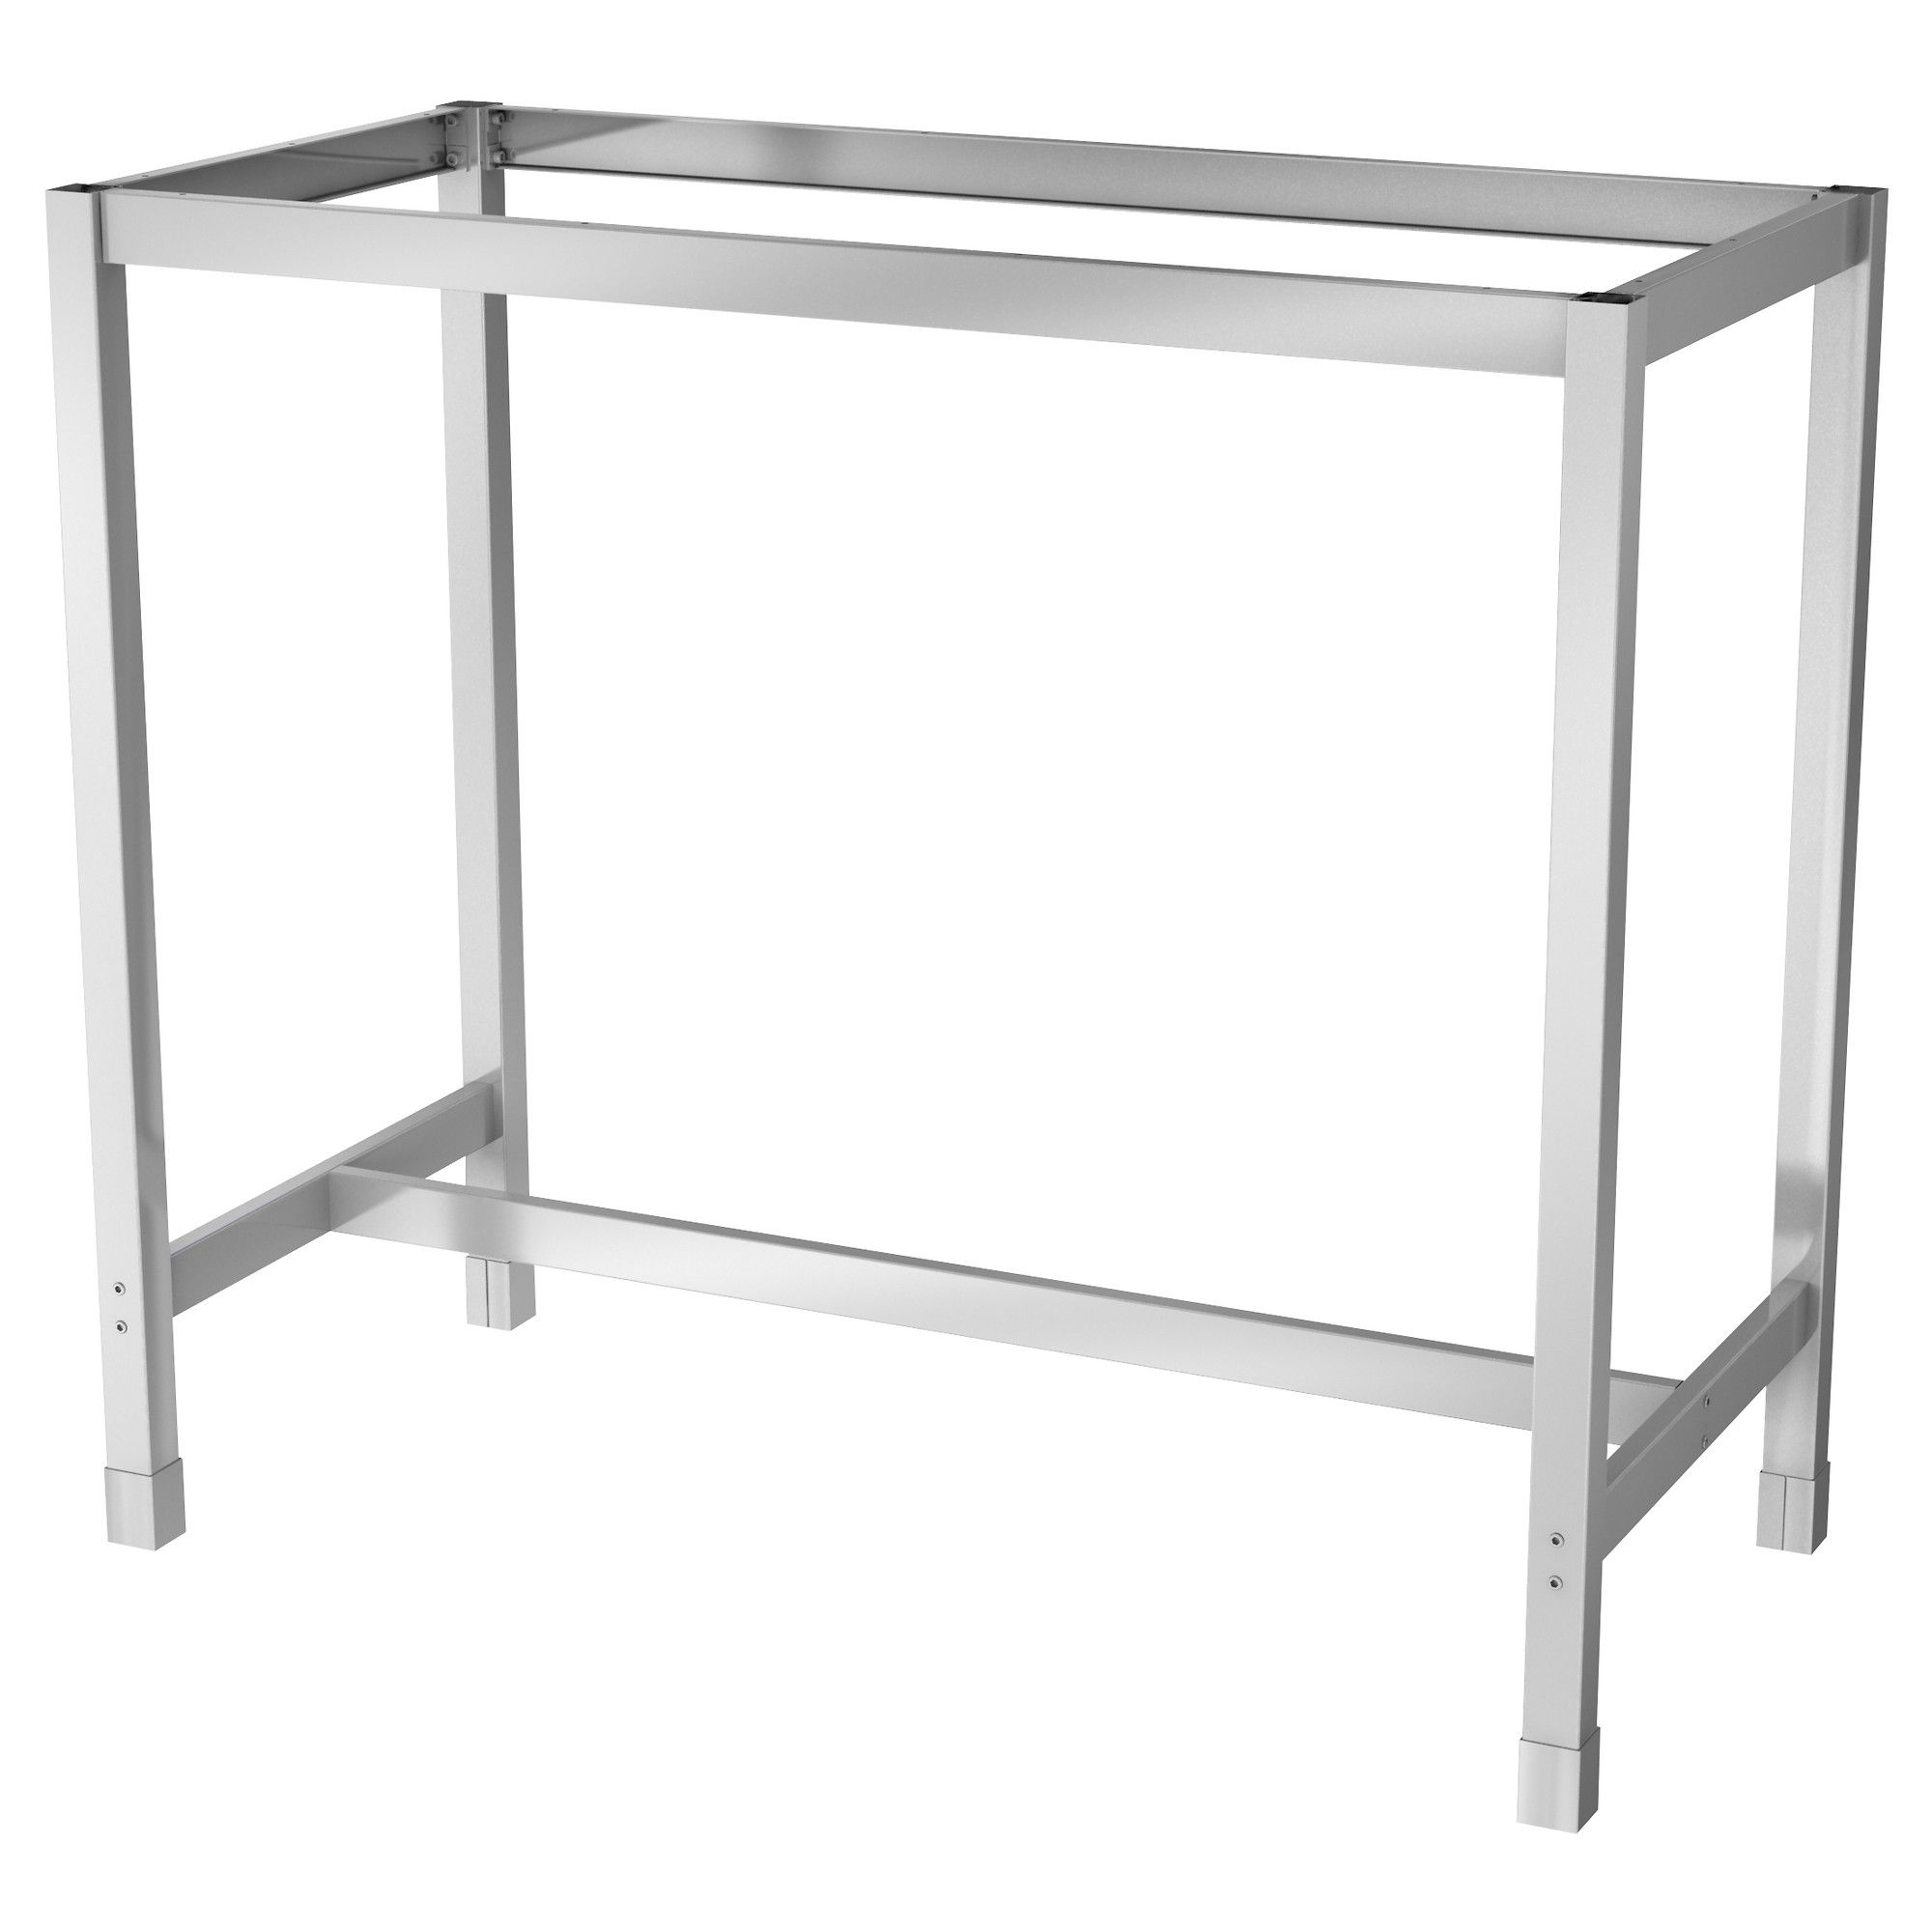 Table Haute Ikea Utby I Want This With Choppers Block On Top Utby Underframe 47 1